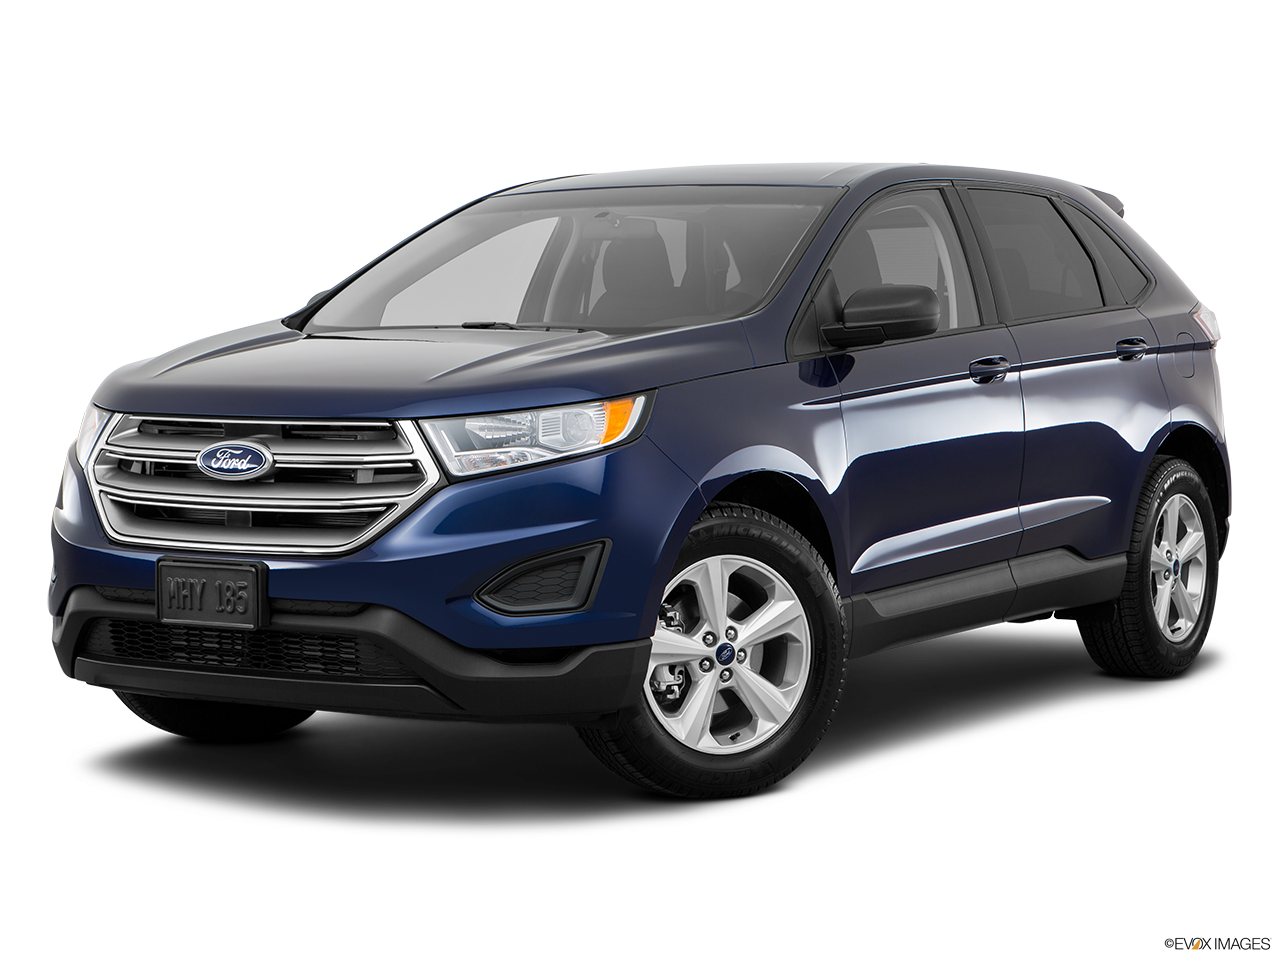 Test Drive A 2016 Ford Edge at Sunland Ford in San Bernardino County